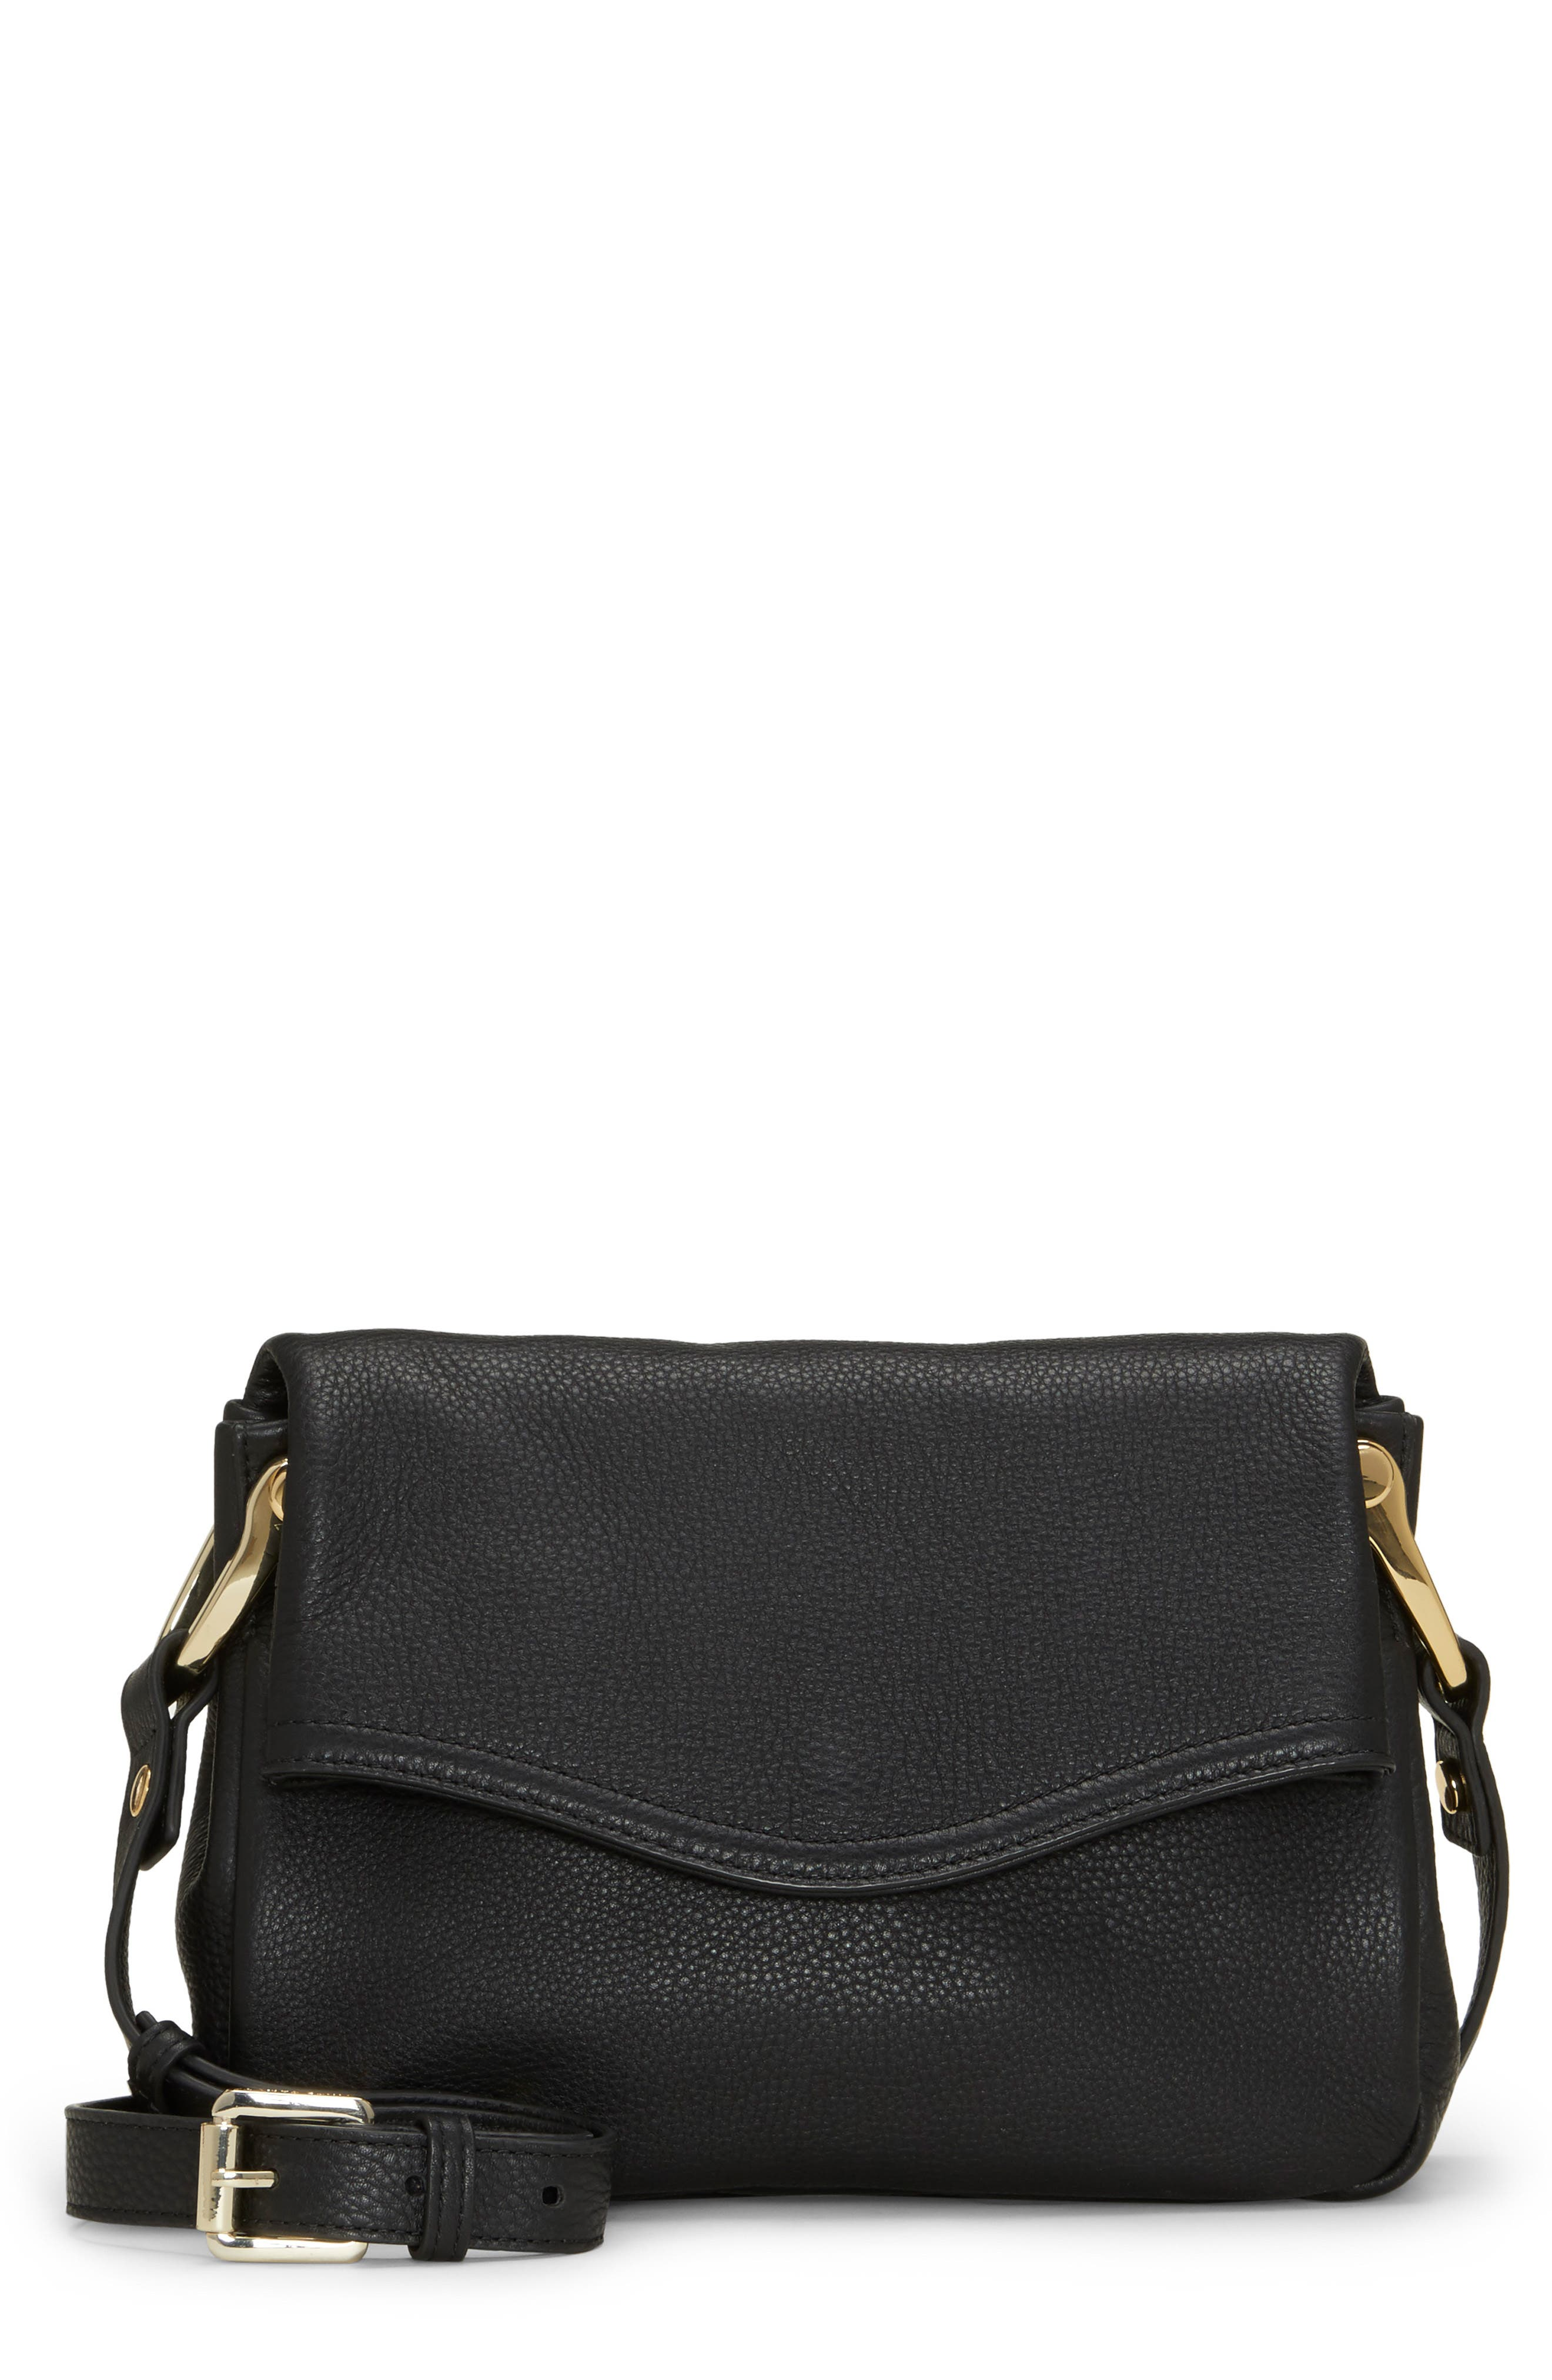 VINCE CAMUTO,                             Clem Leather Crossbody Bag,                             Main thumbnail 1, color,                             001